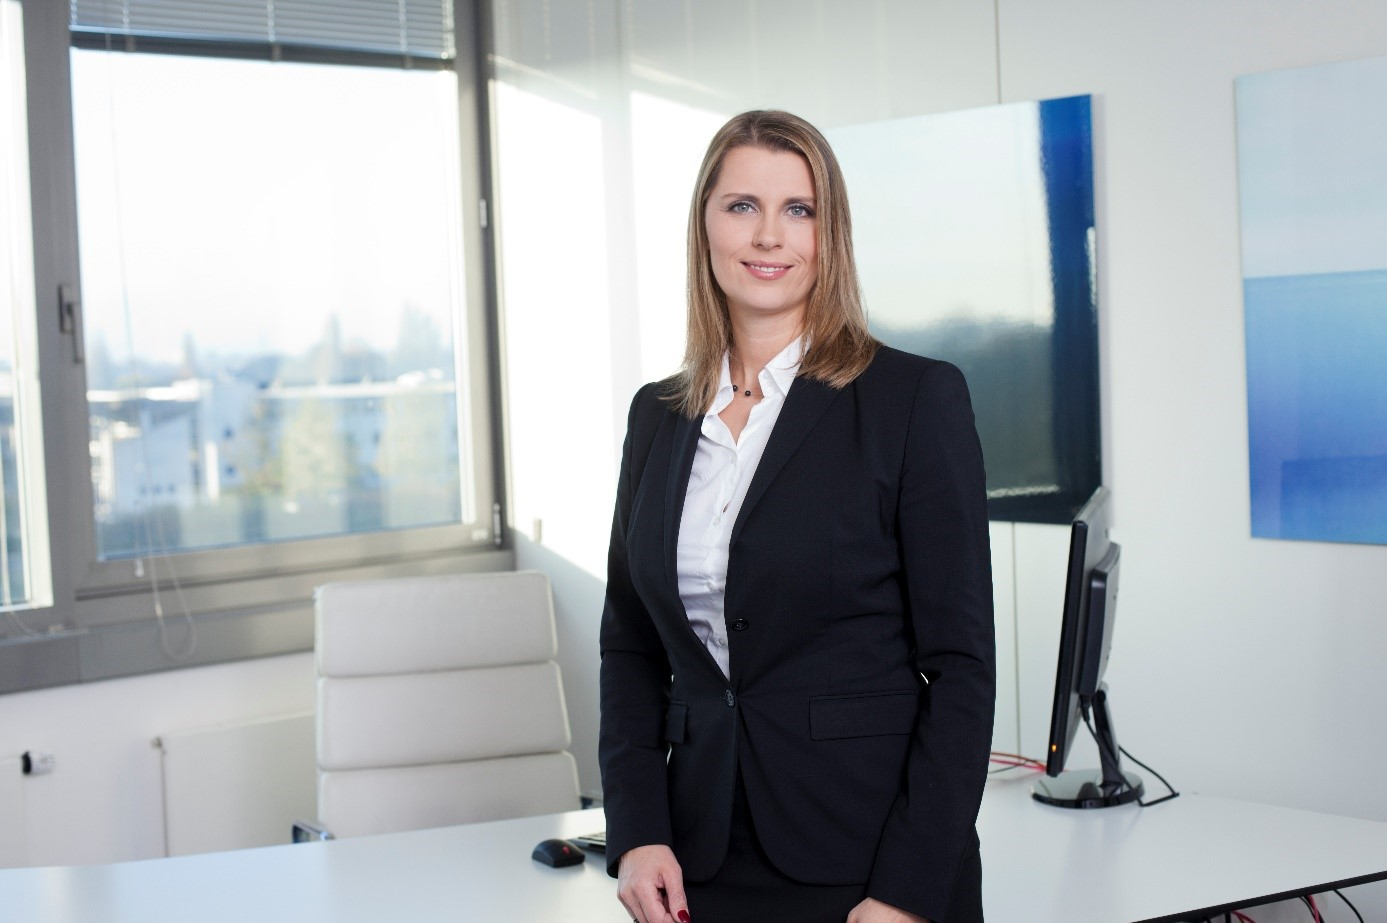 Image: Stefanie Zimmermann, Director of Human Resources